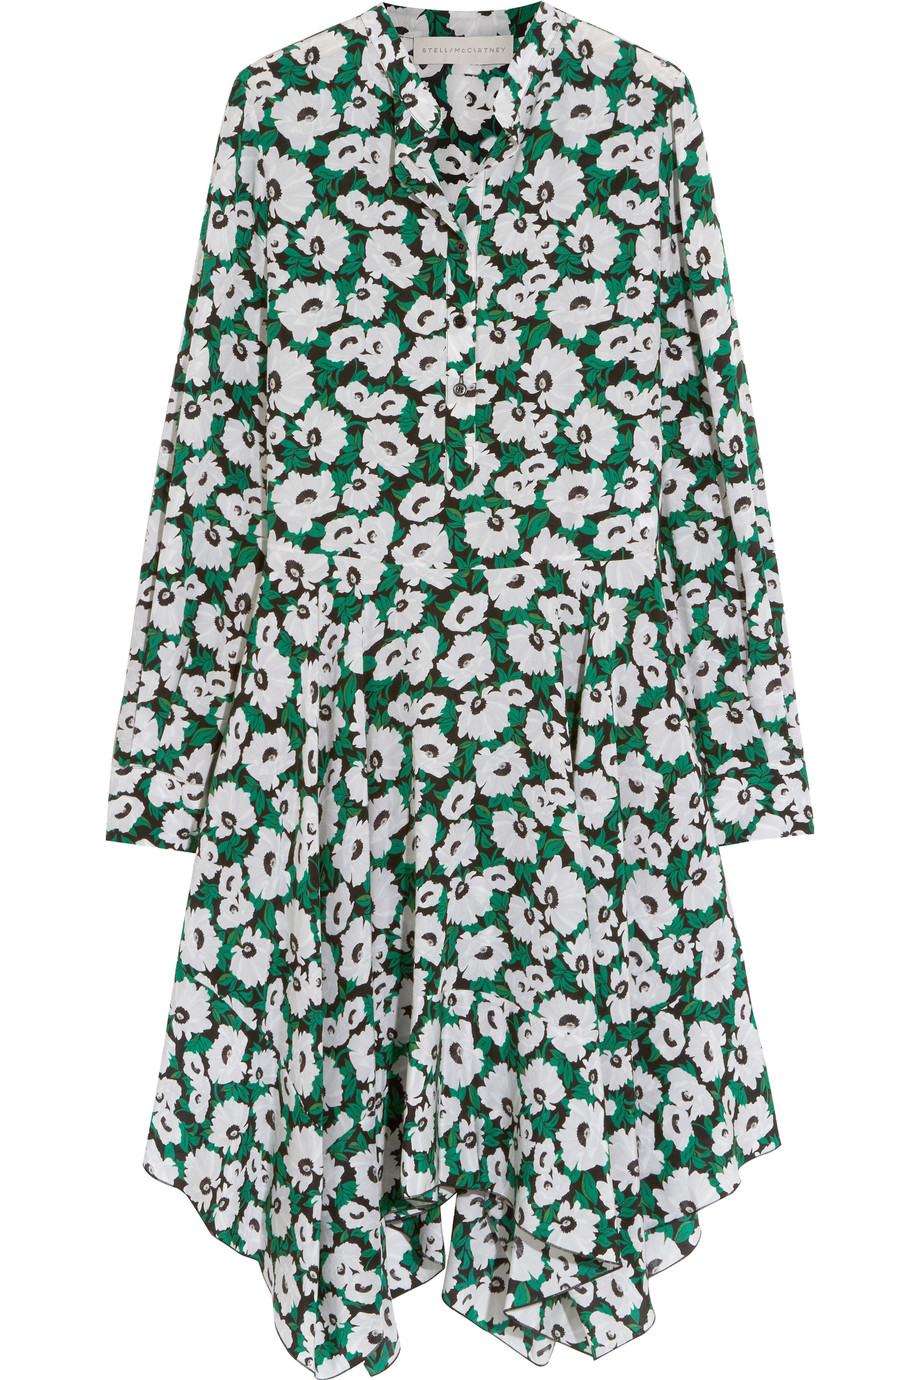 Stella Mccartney Rita Floral-Print Silk Crepe De Chine Dress, Green, Women's - Floral, Size: 34